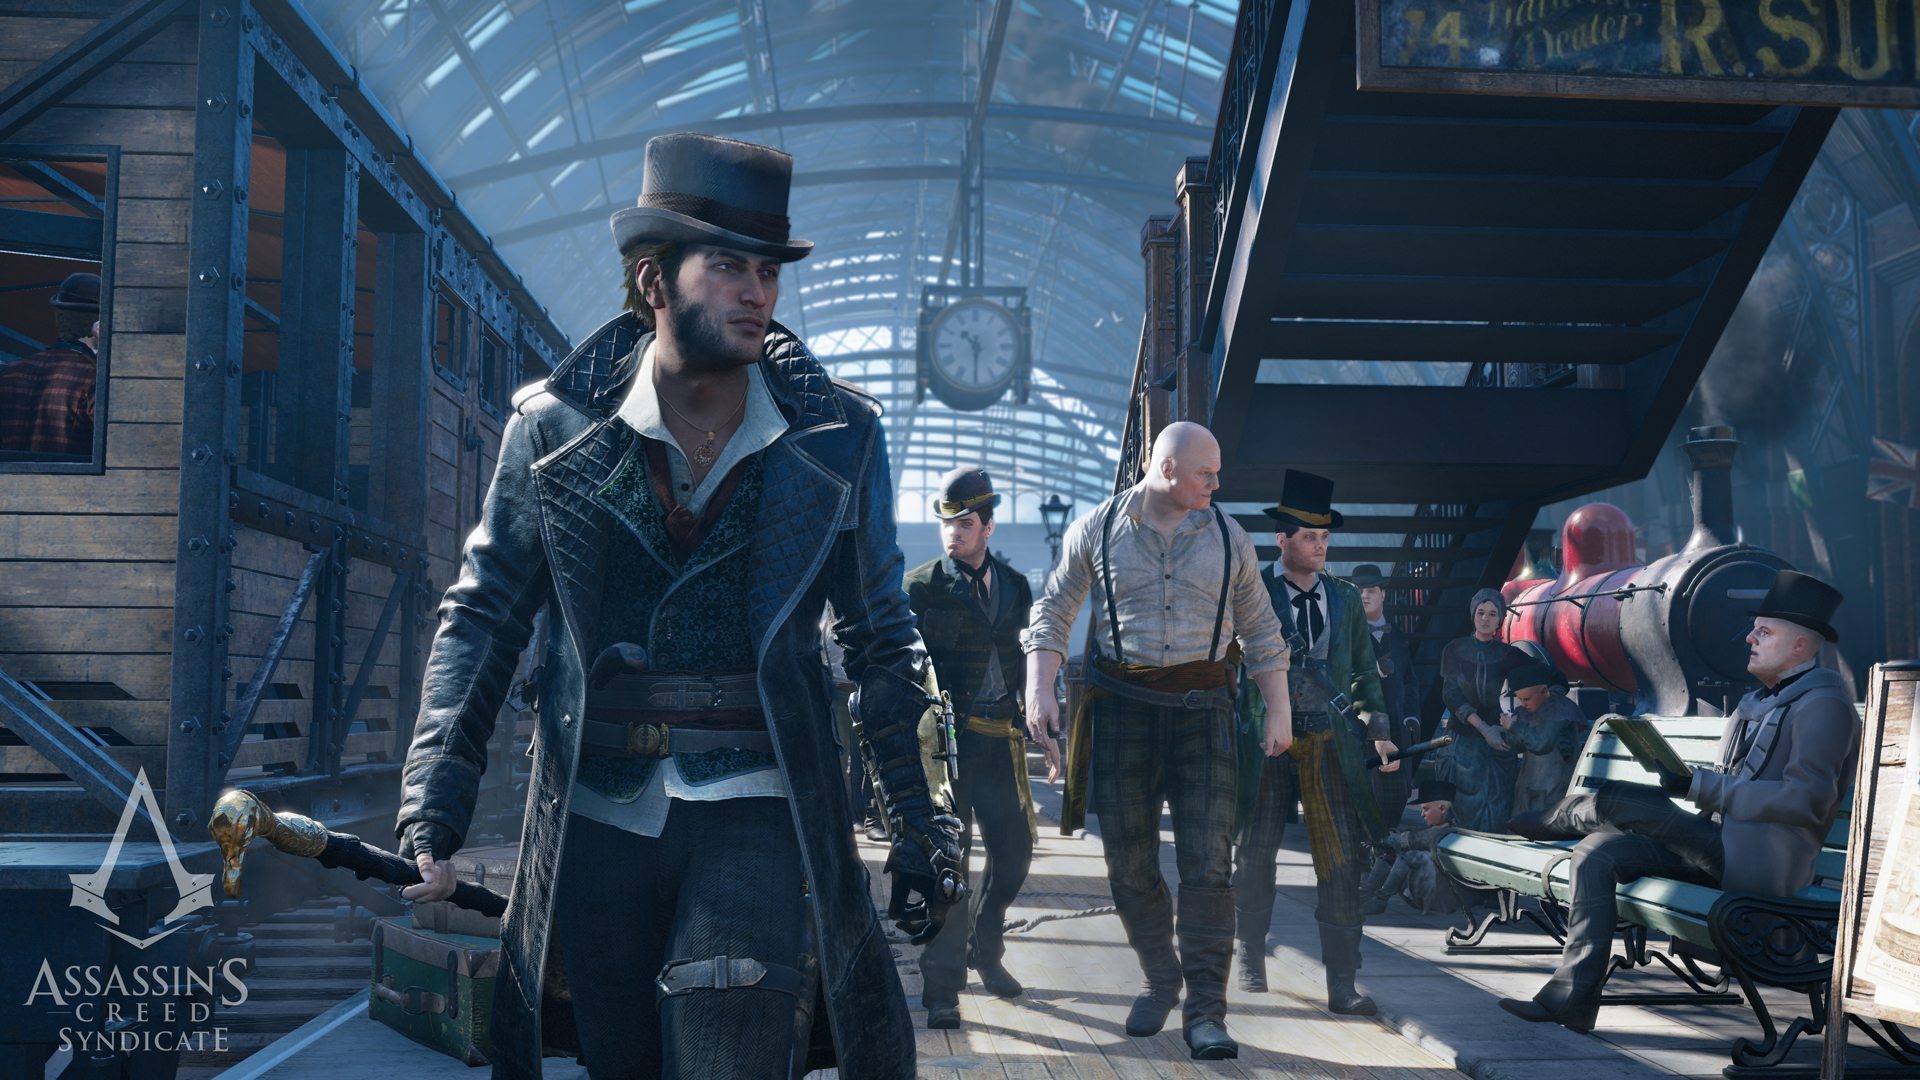 Assassin's Creed Syndicate Gaming Cypher 2